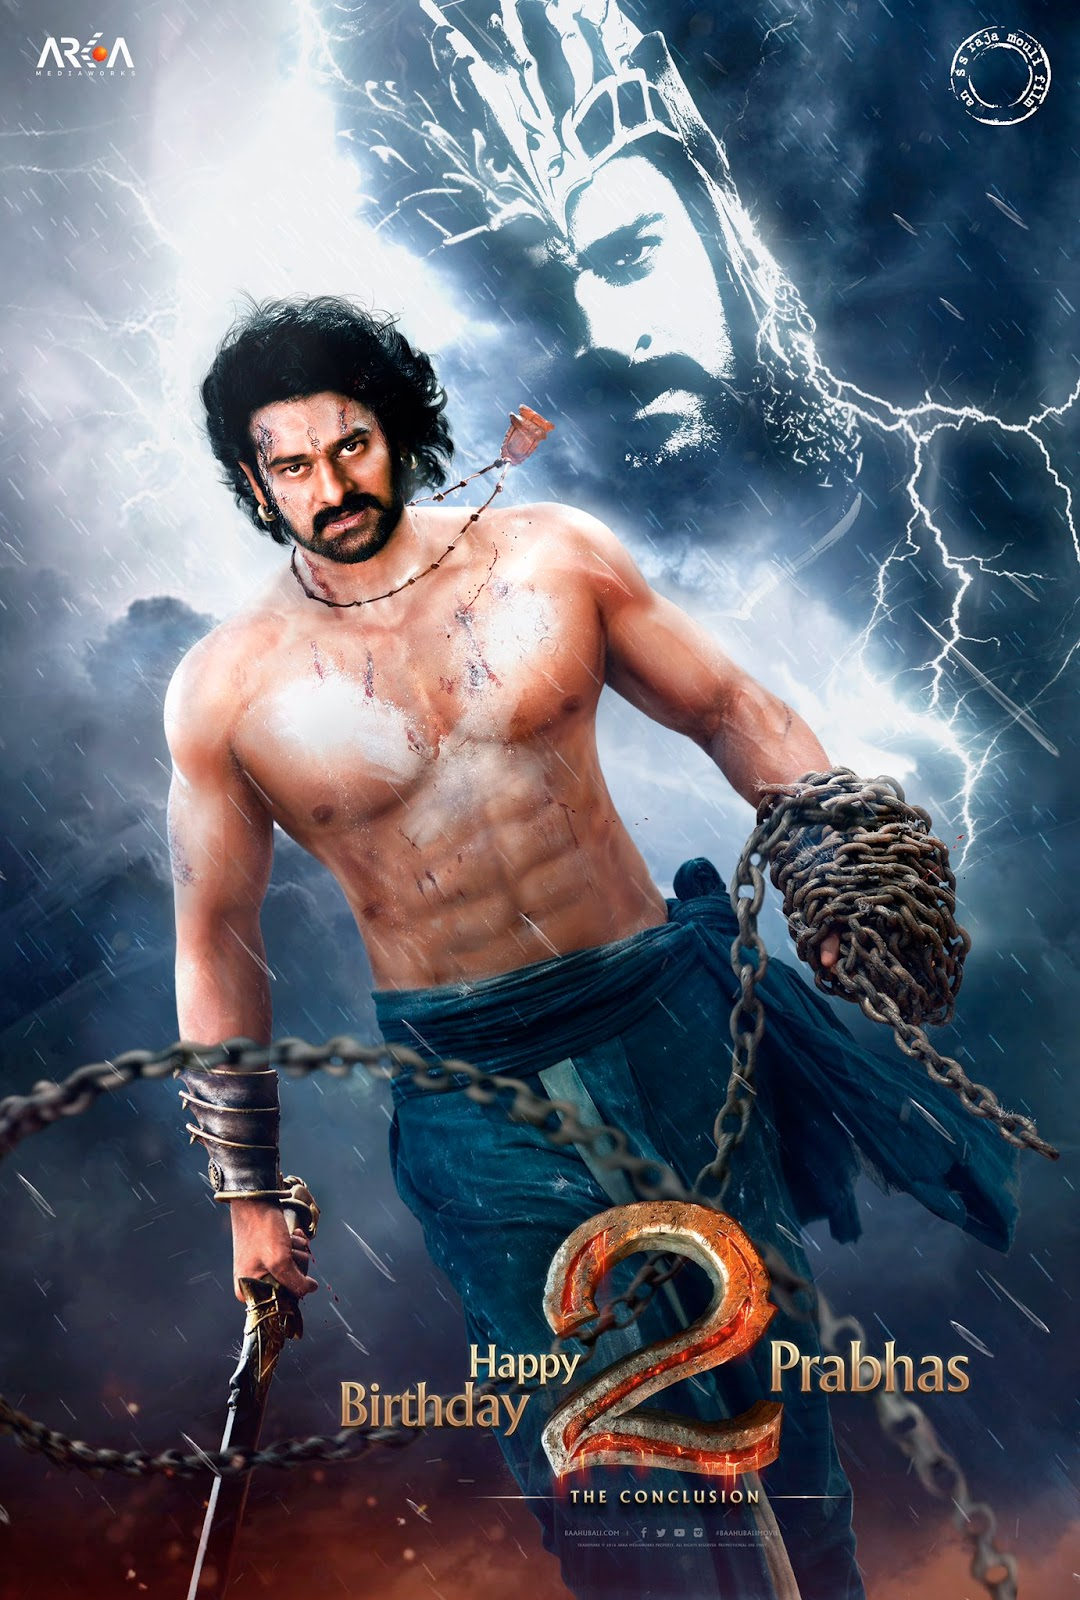 Bahubali 2 release dates - Bahubali 2 Trailer Watch Baahubali 2 Movie Trailer Online Prabhas Film First Official Trailer